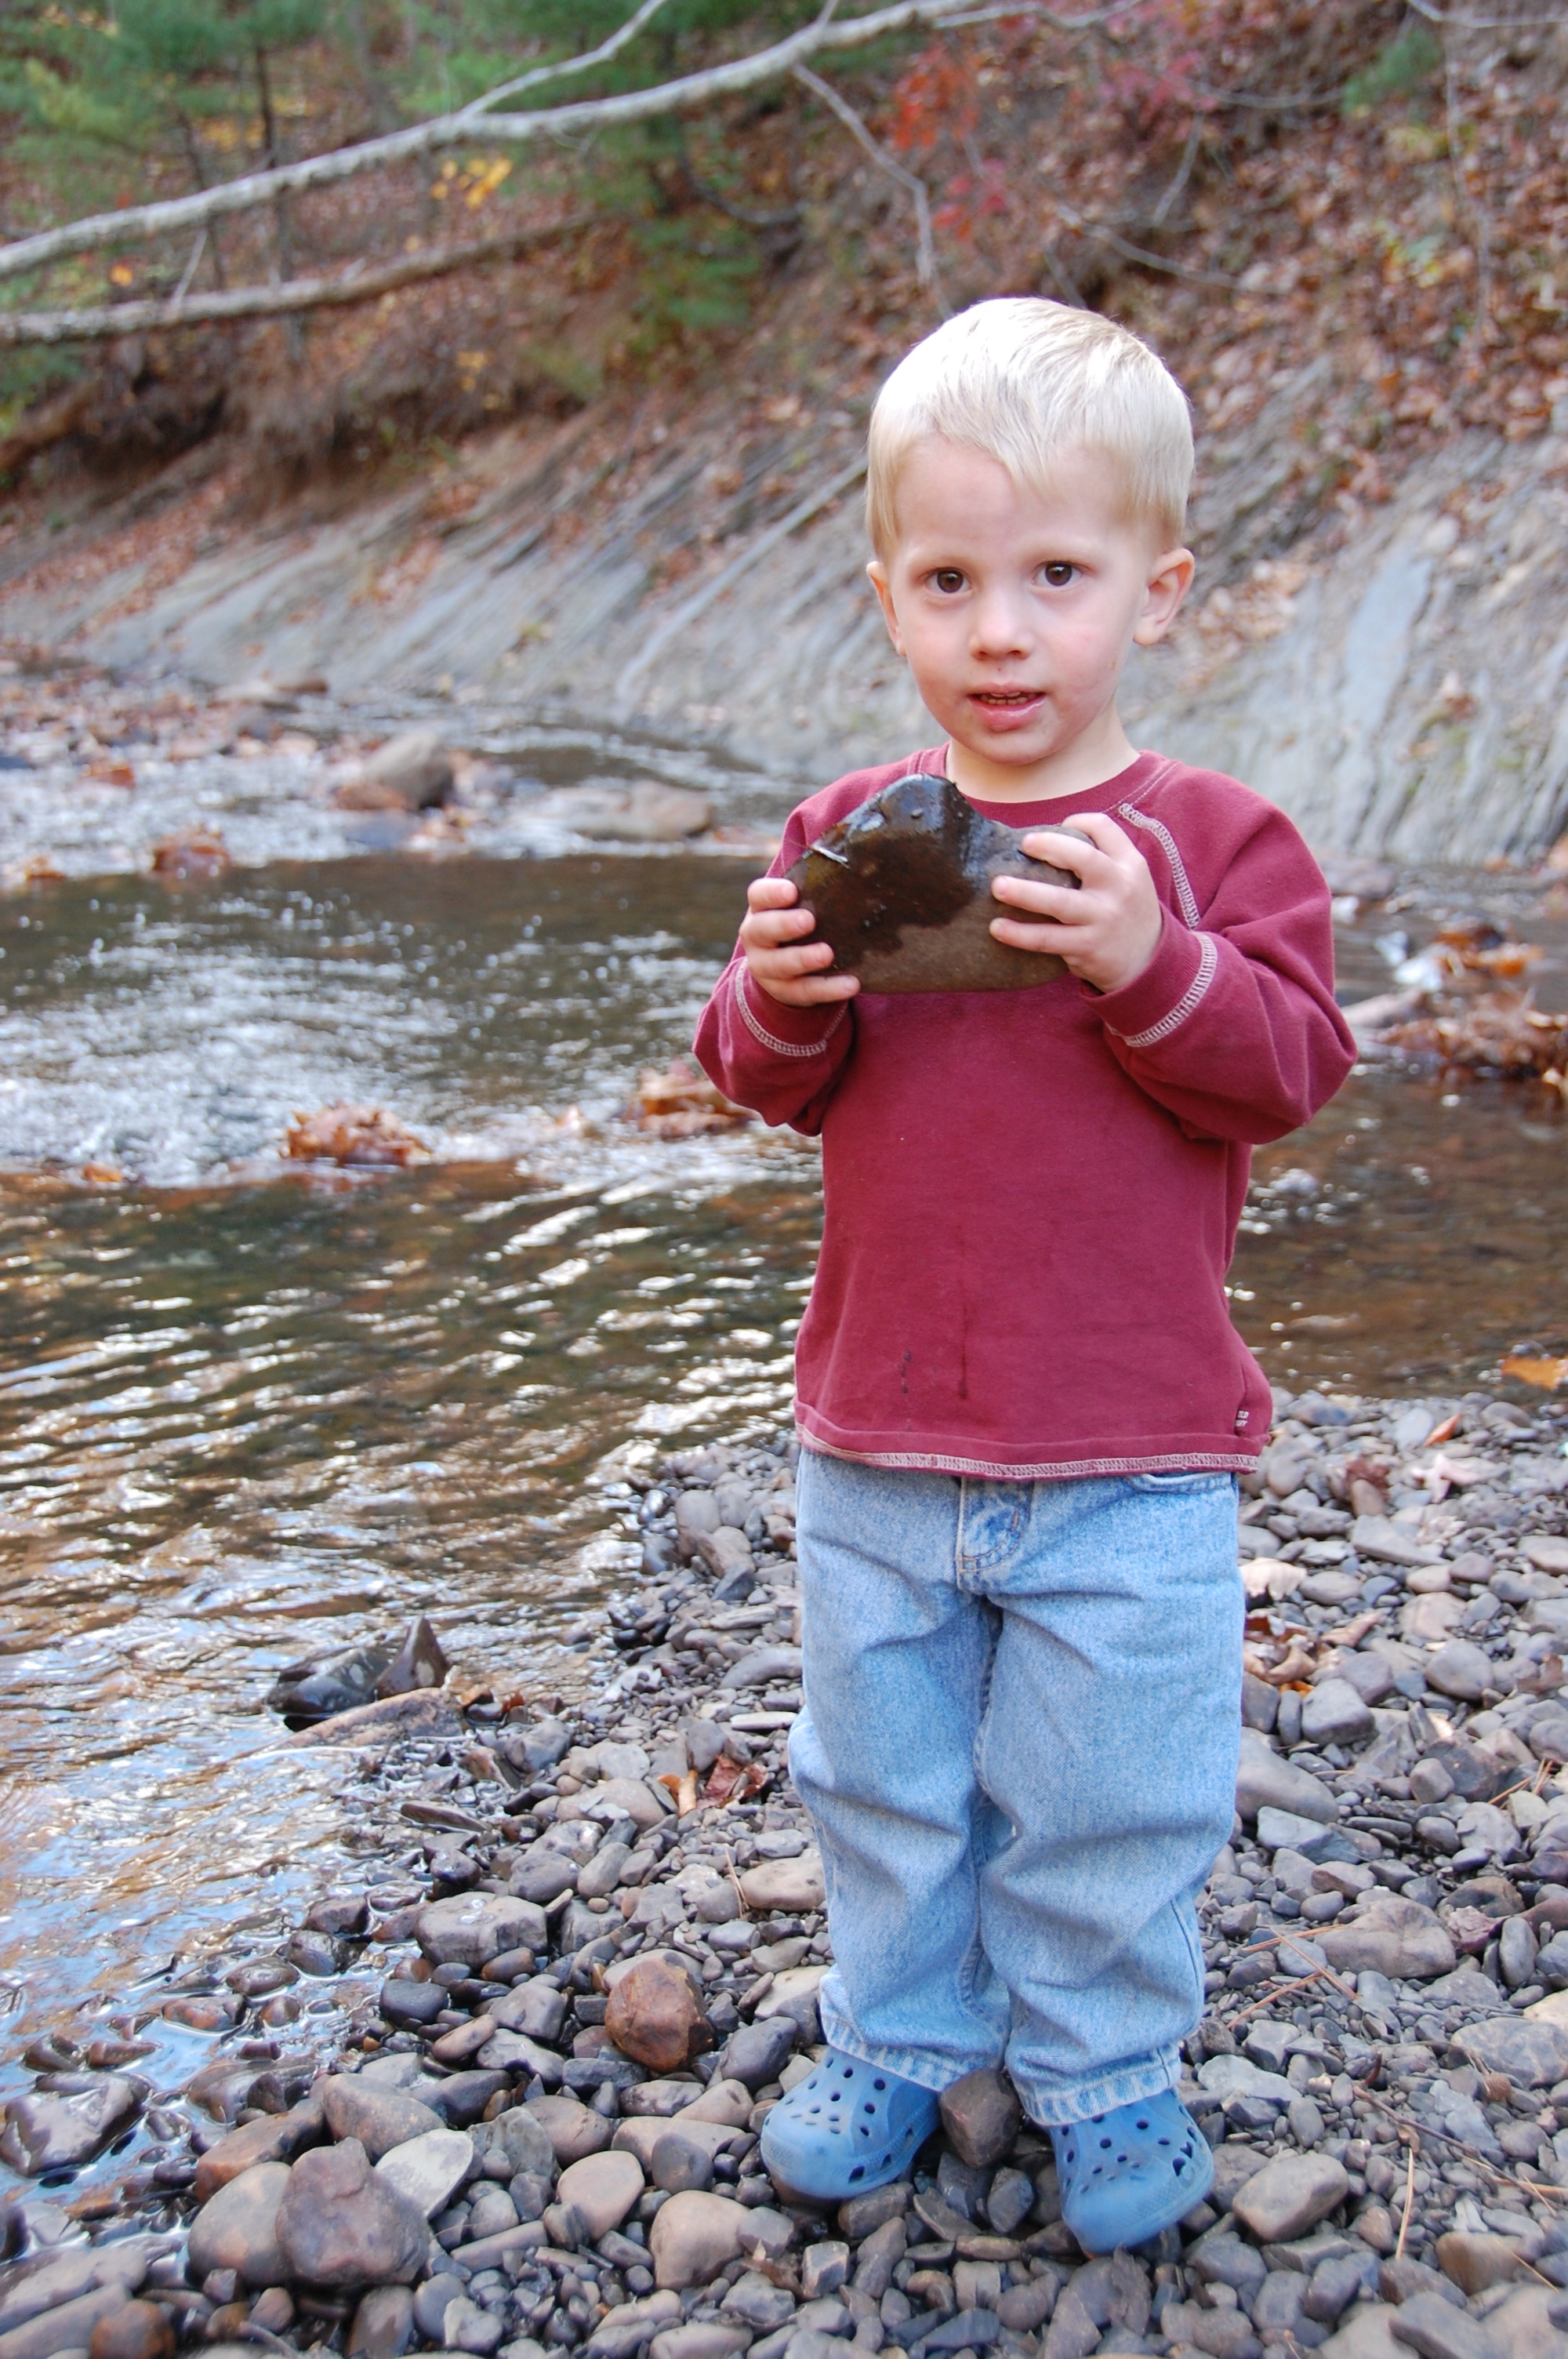 Kilby loved throwing rocks in.